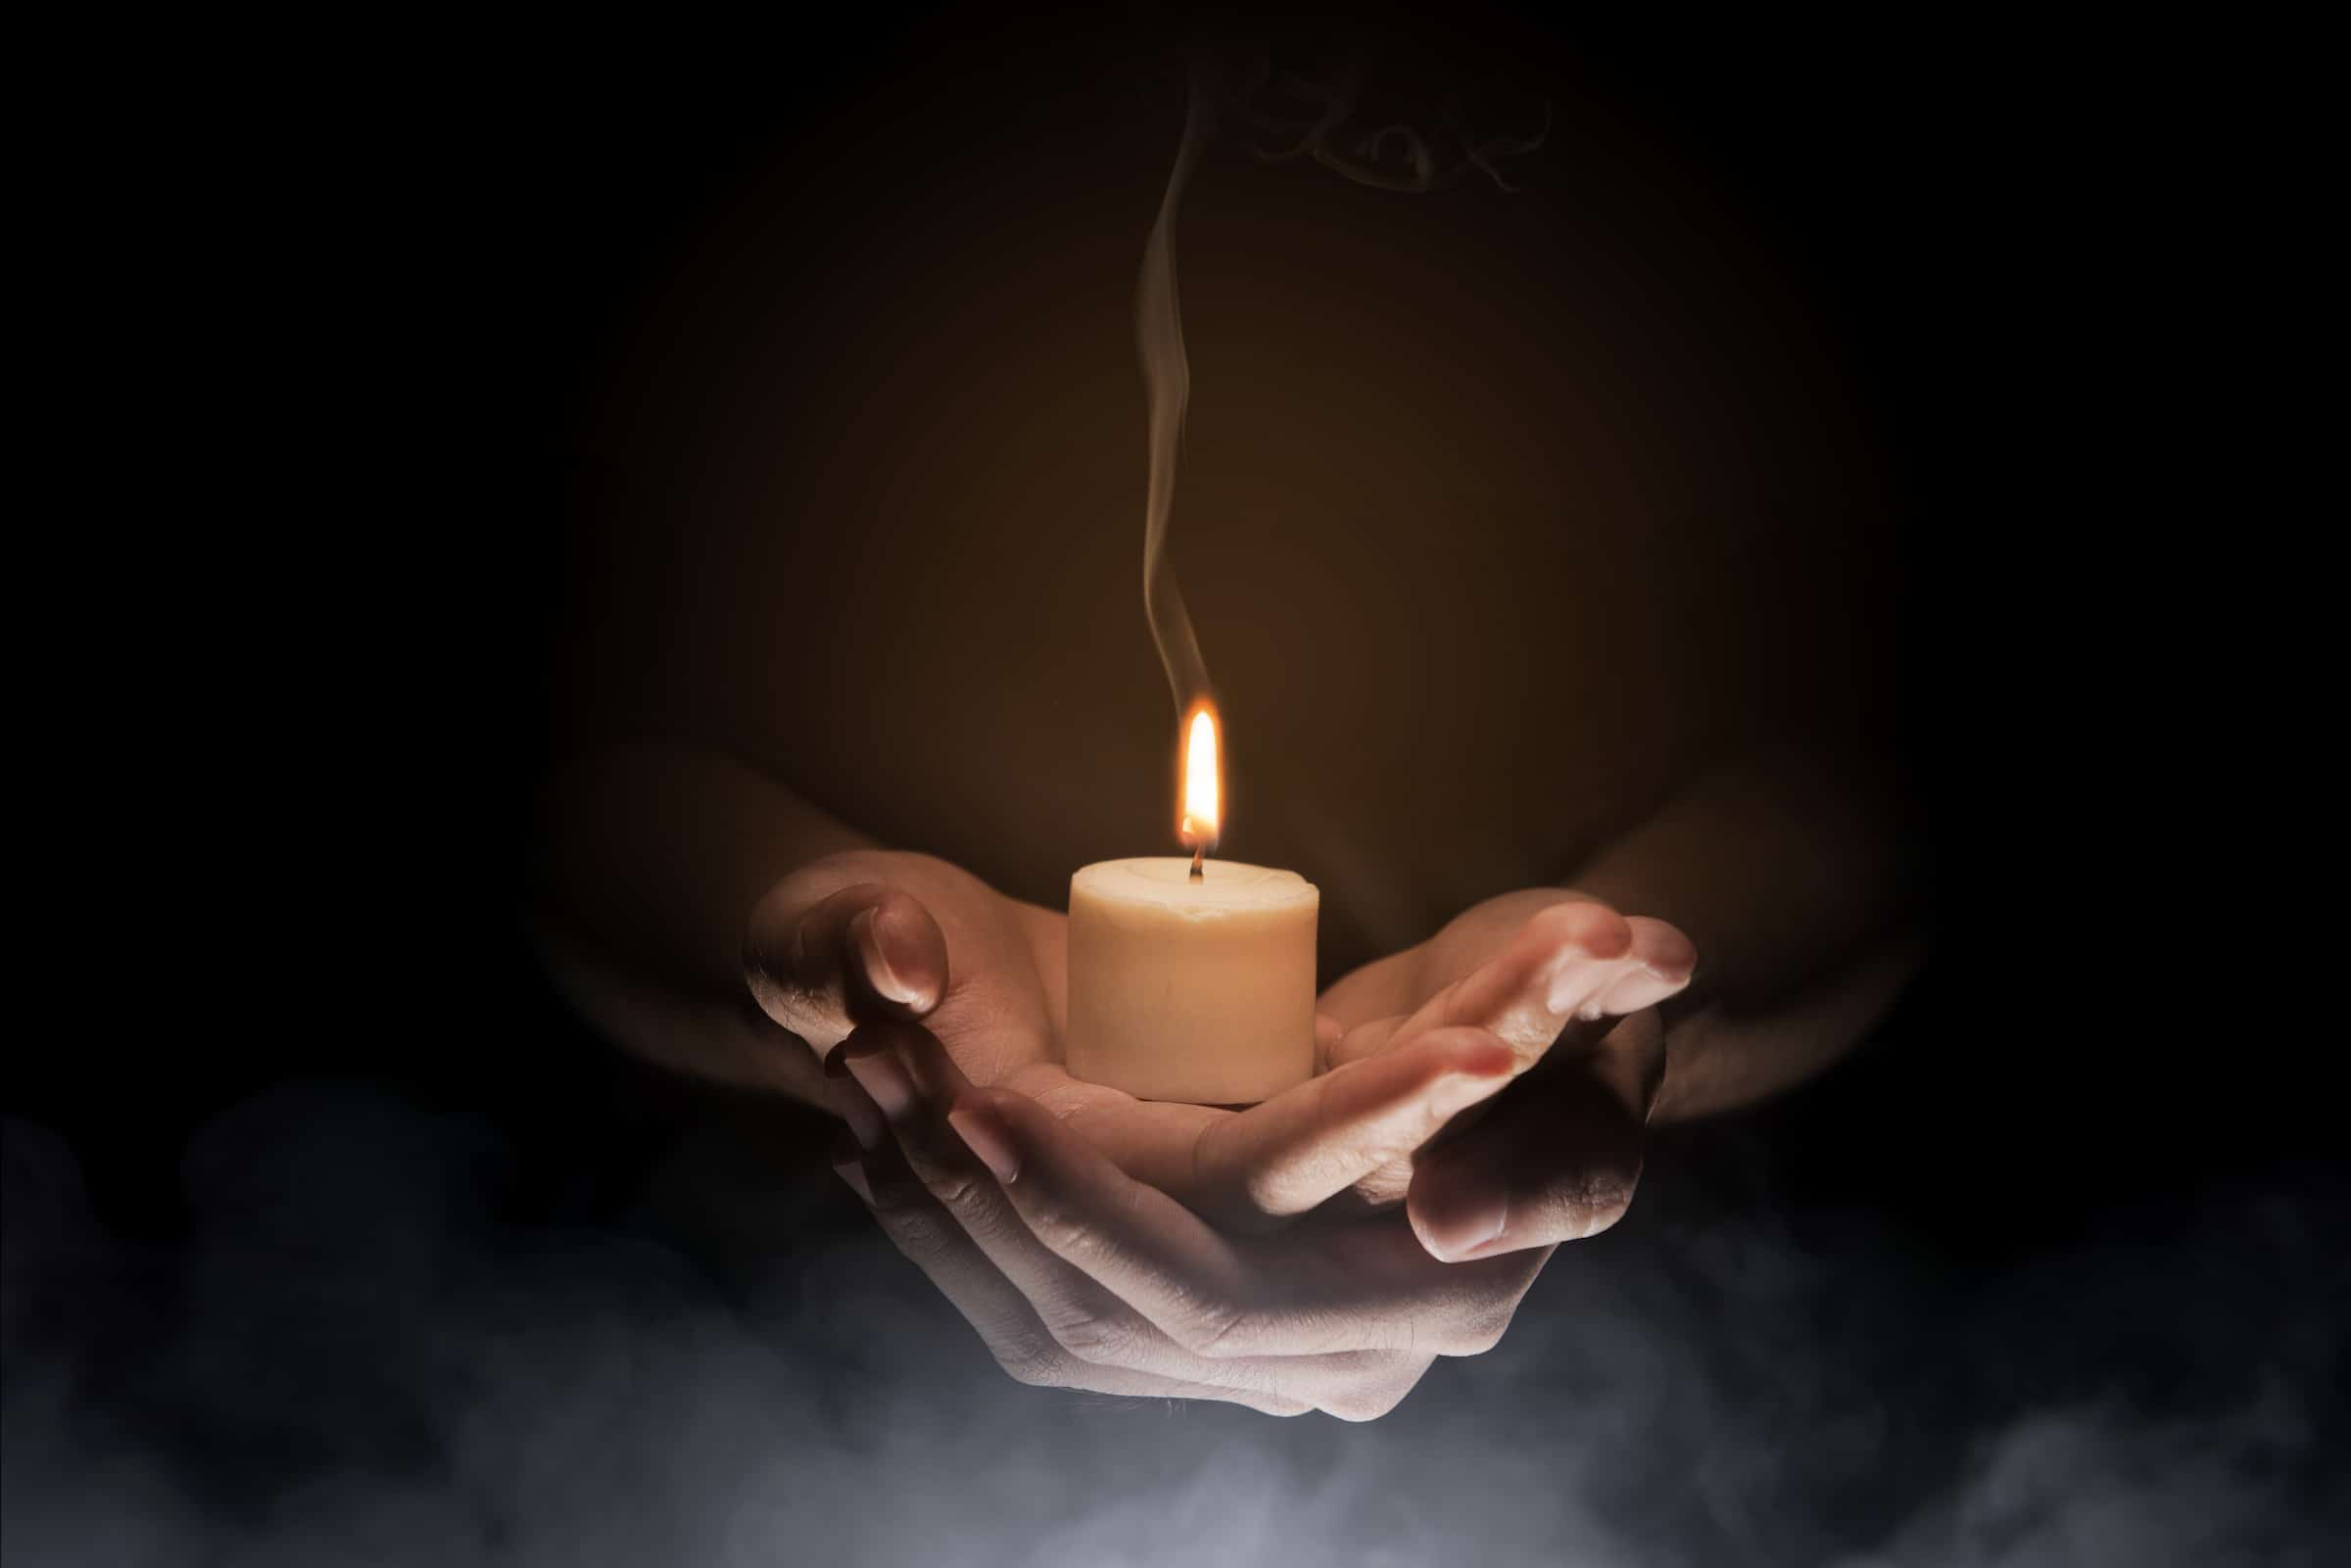 Hands holding candle over dark background. Christian Pray